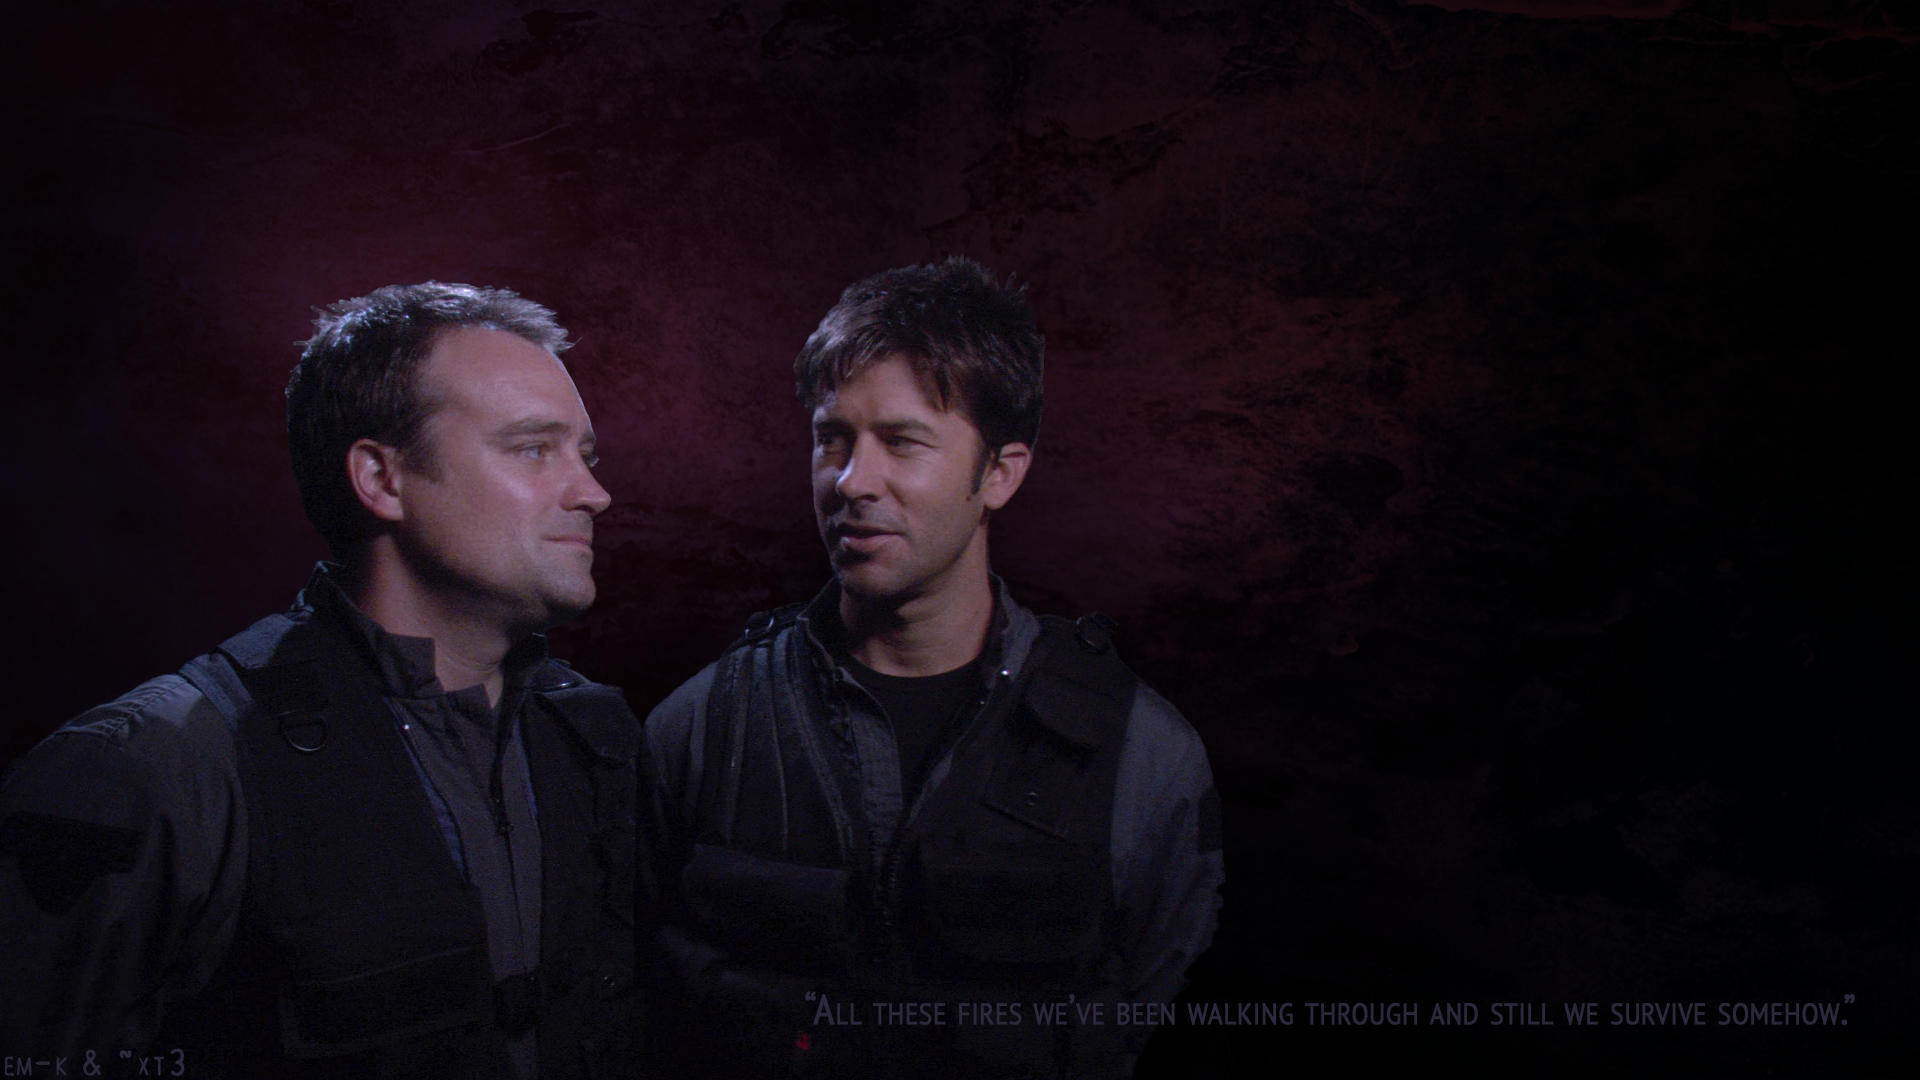 """Rodney and John in tac gear looking at each other against a glowing purple background. The caption reads: All these fires we've been walking through and still we survive, somehow."""""""